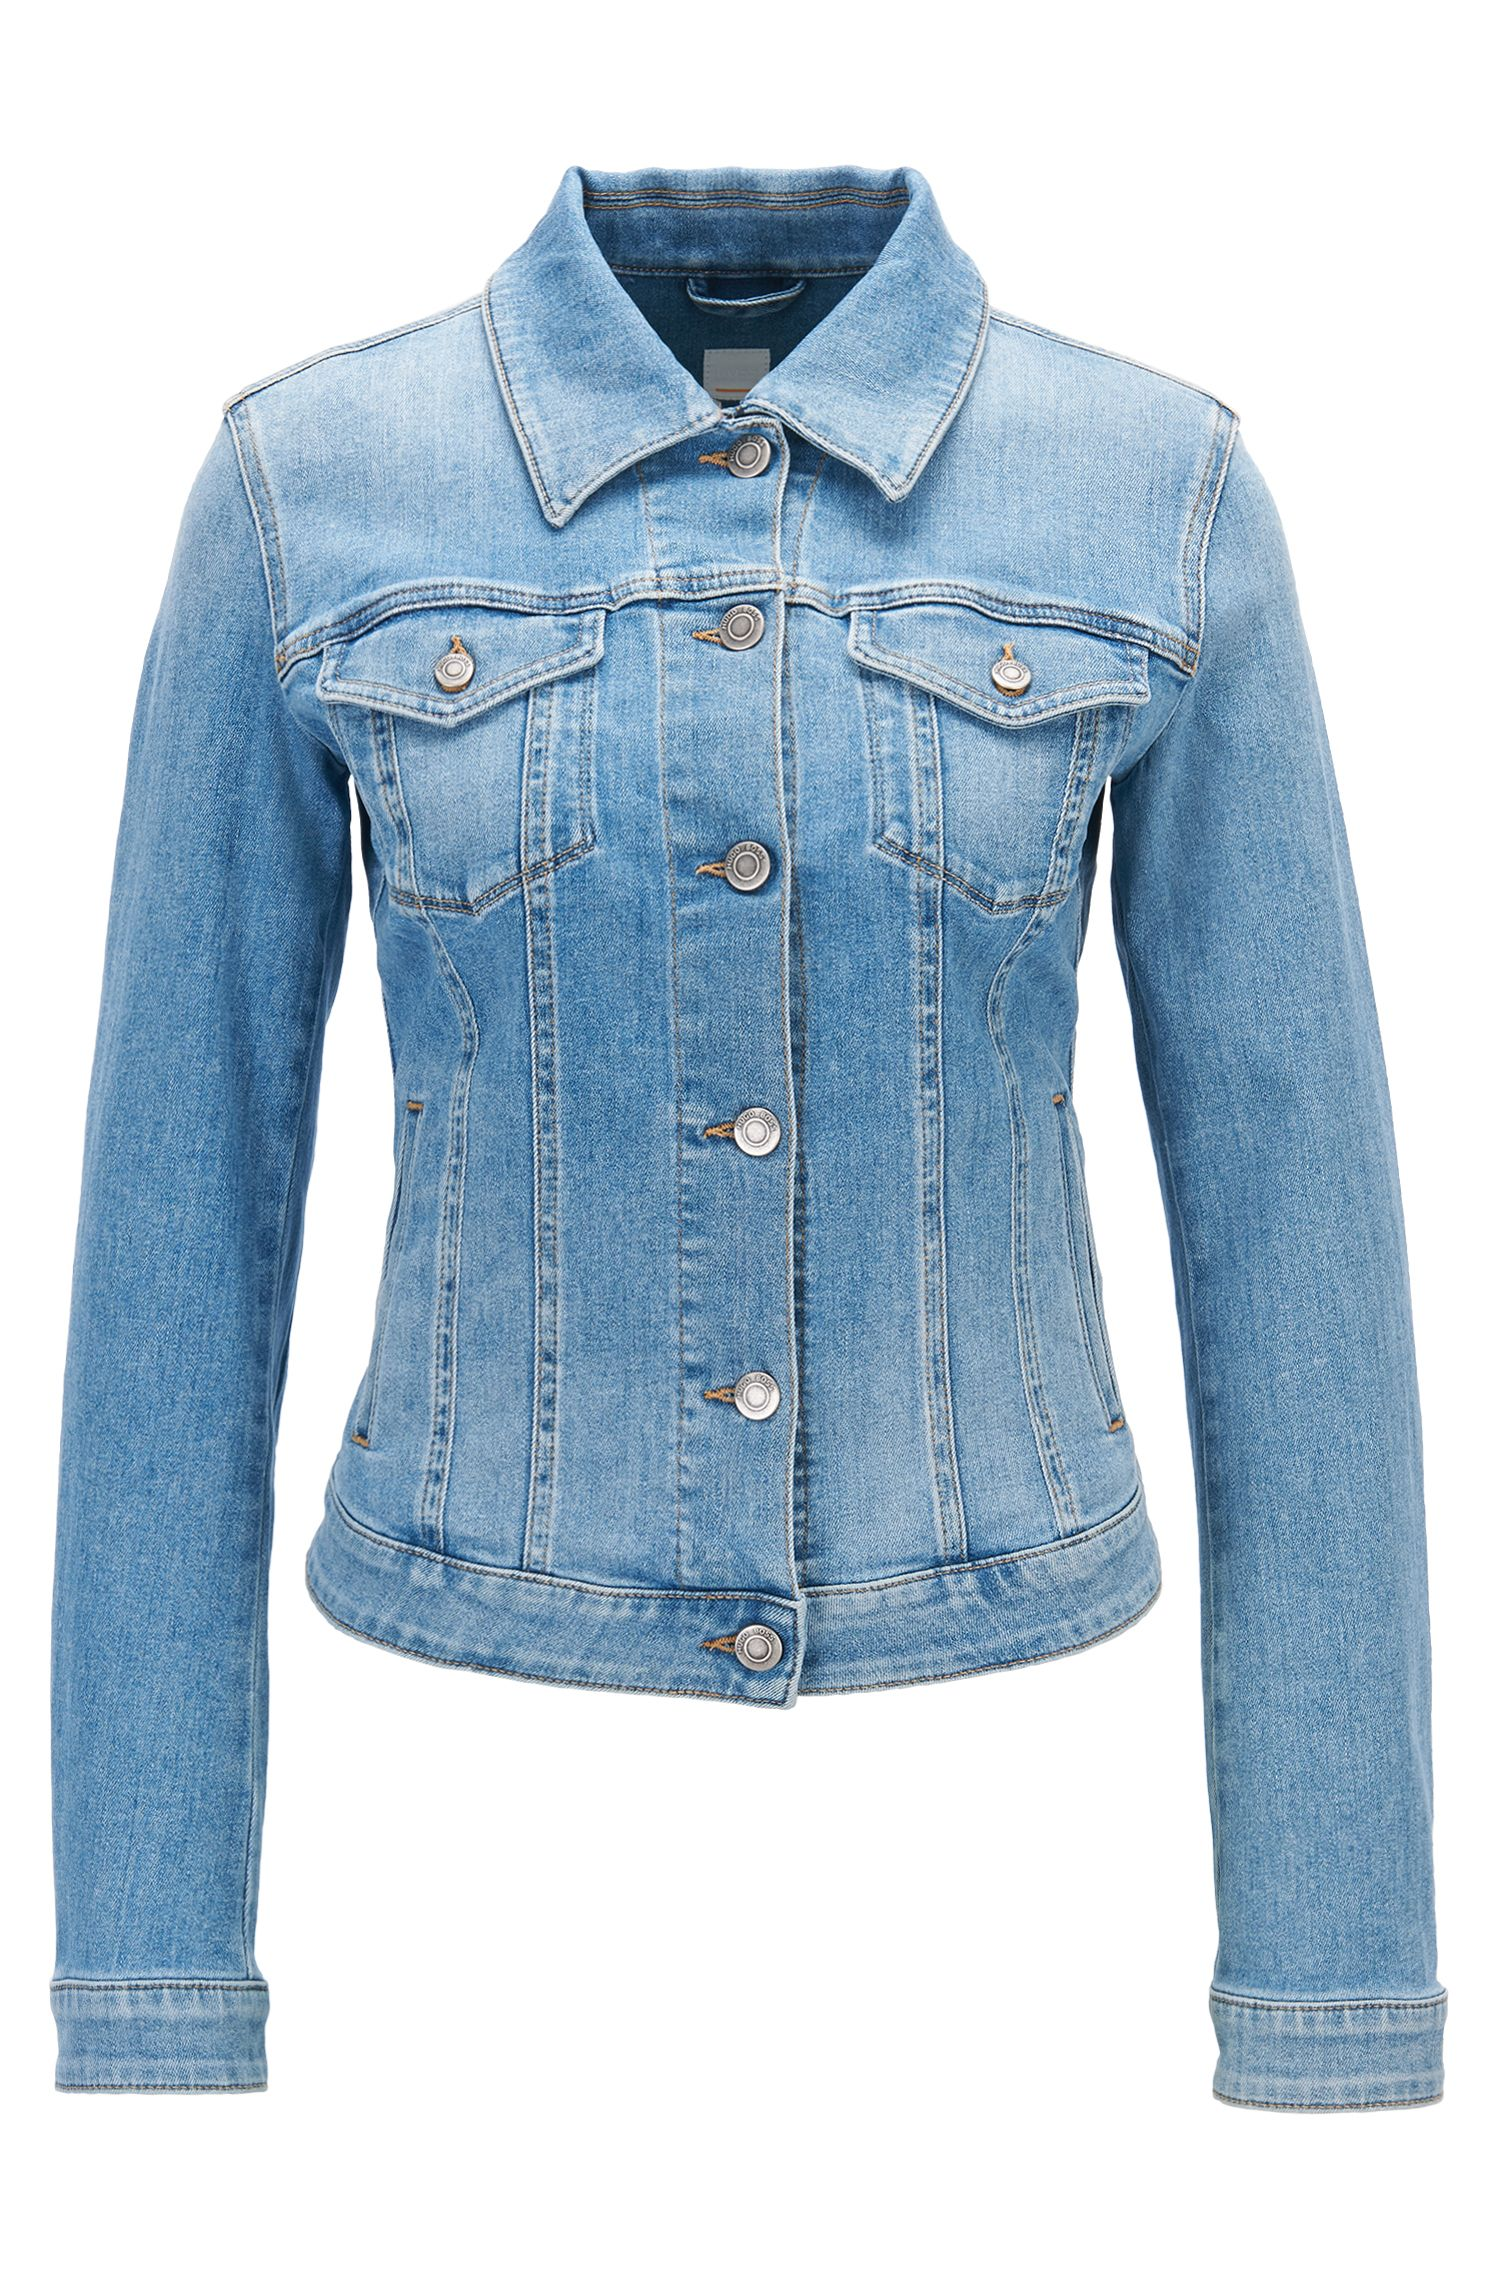 Veste en jean Slim Fit en denim stretch bleu clair à effets usés